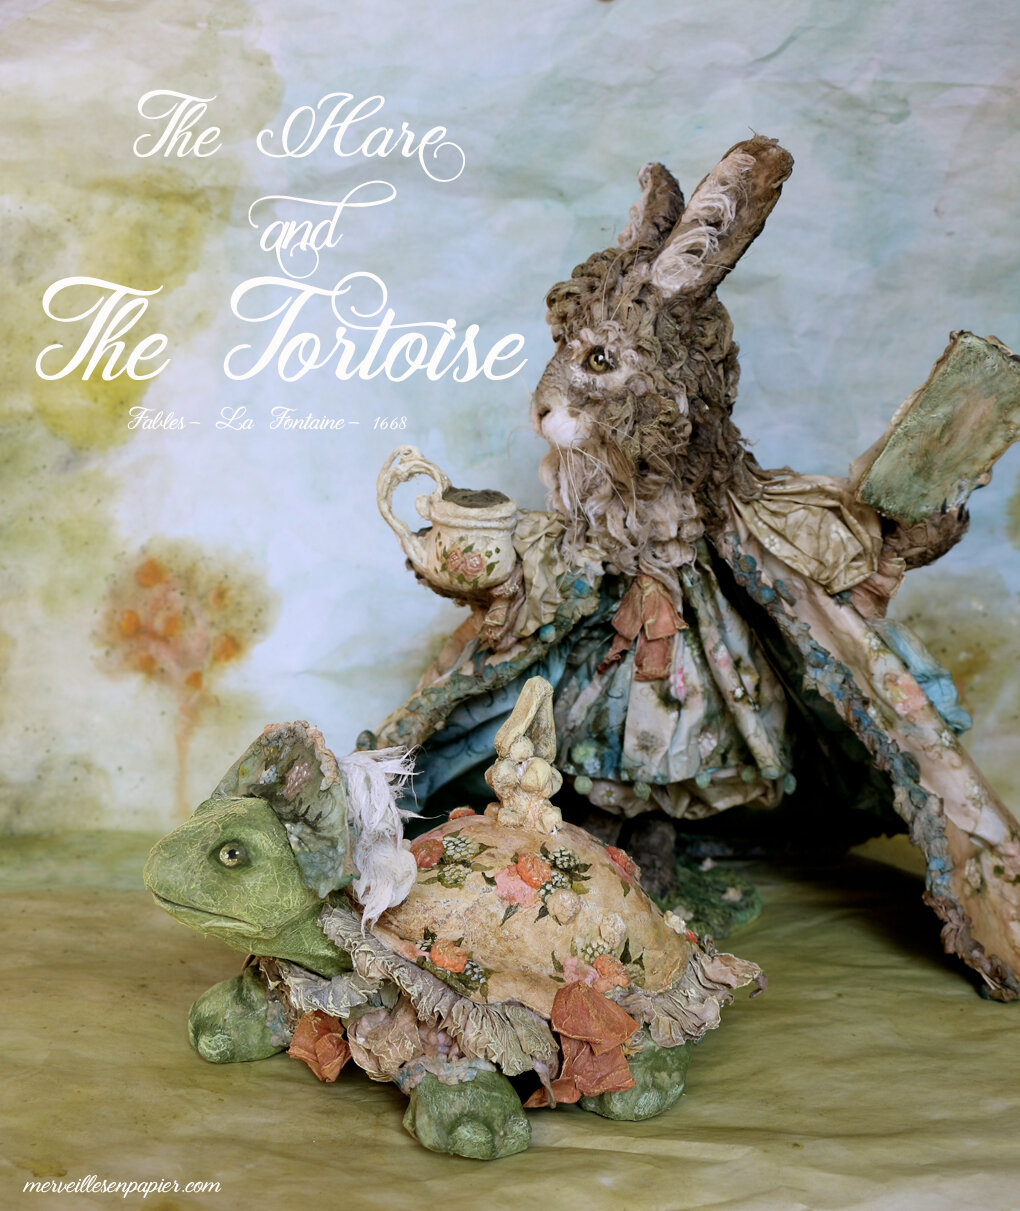 the-Hare-and-the--tortoise--16.jpg